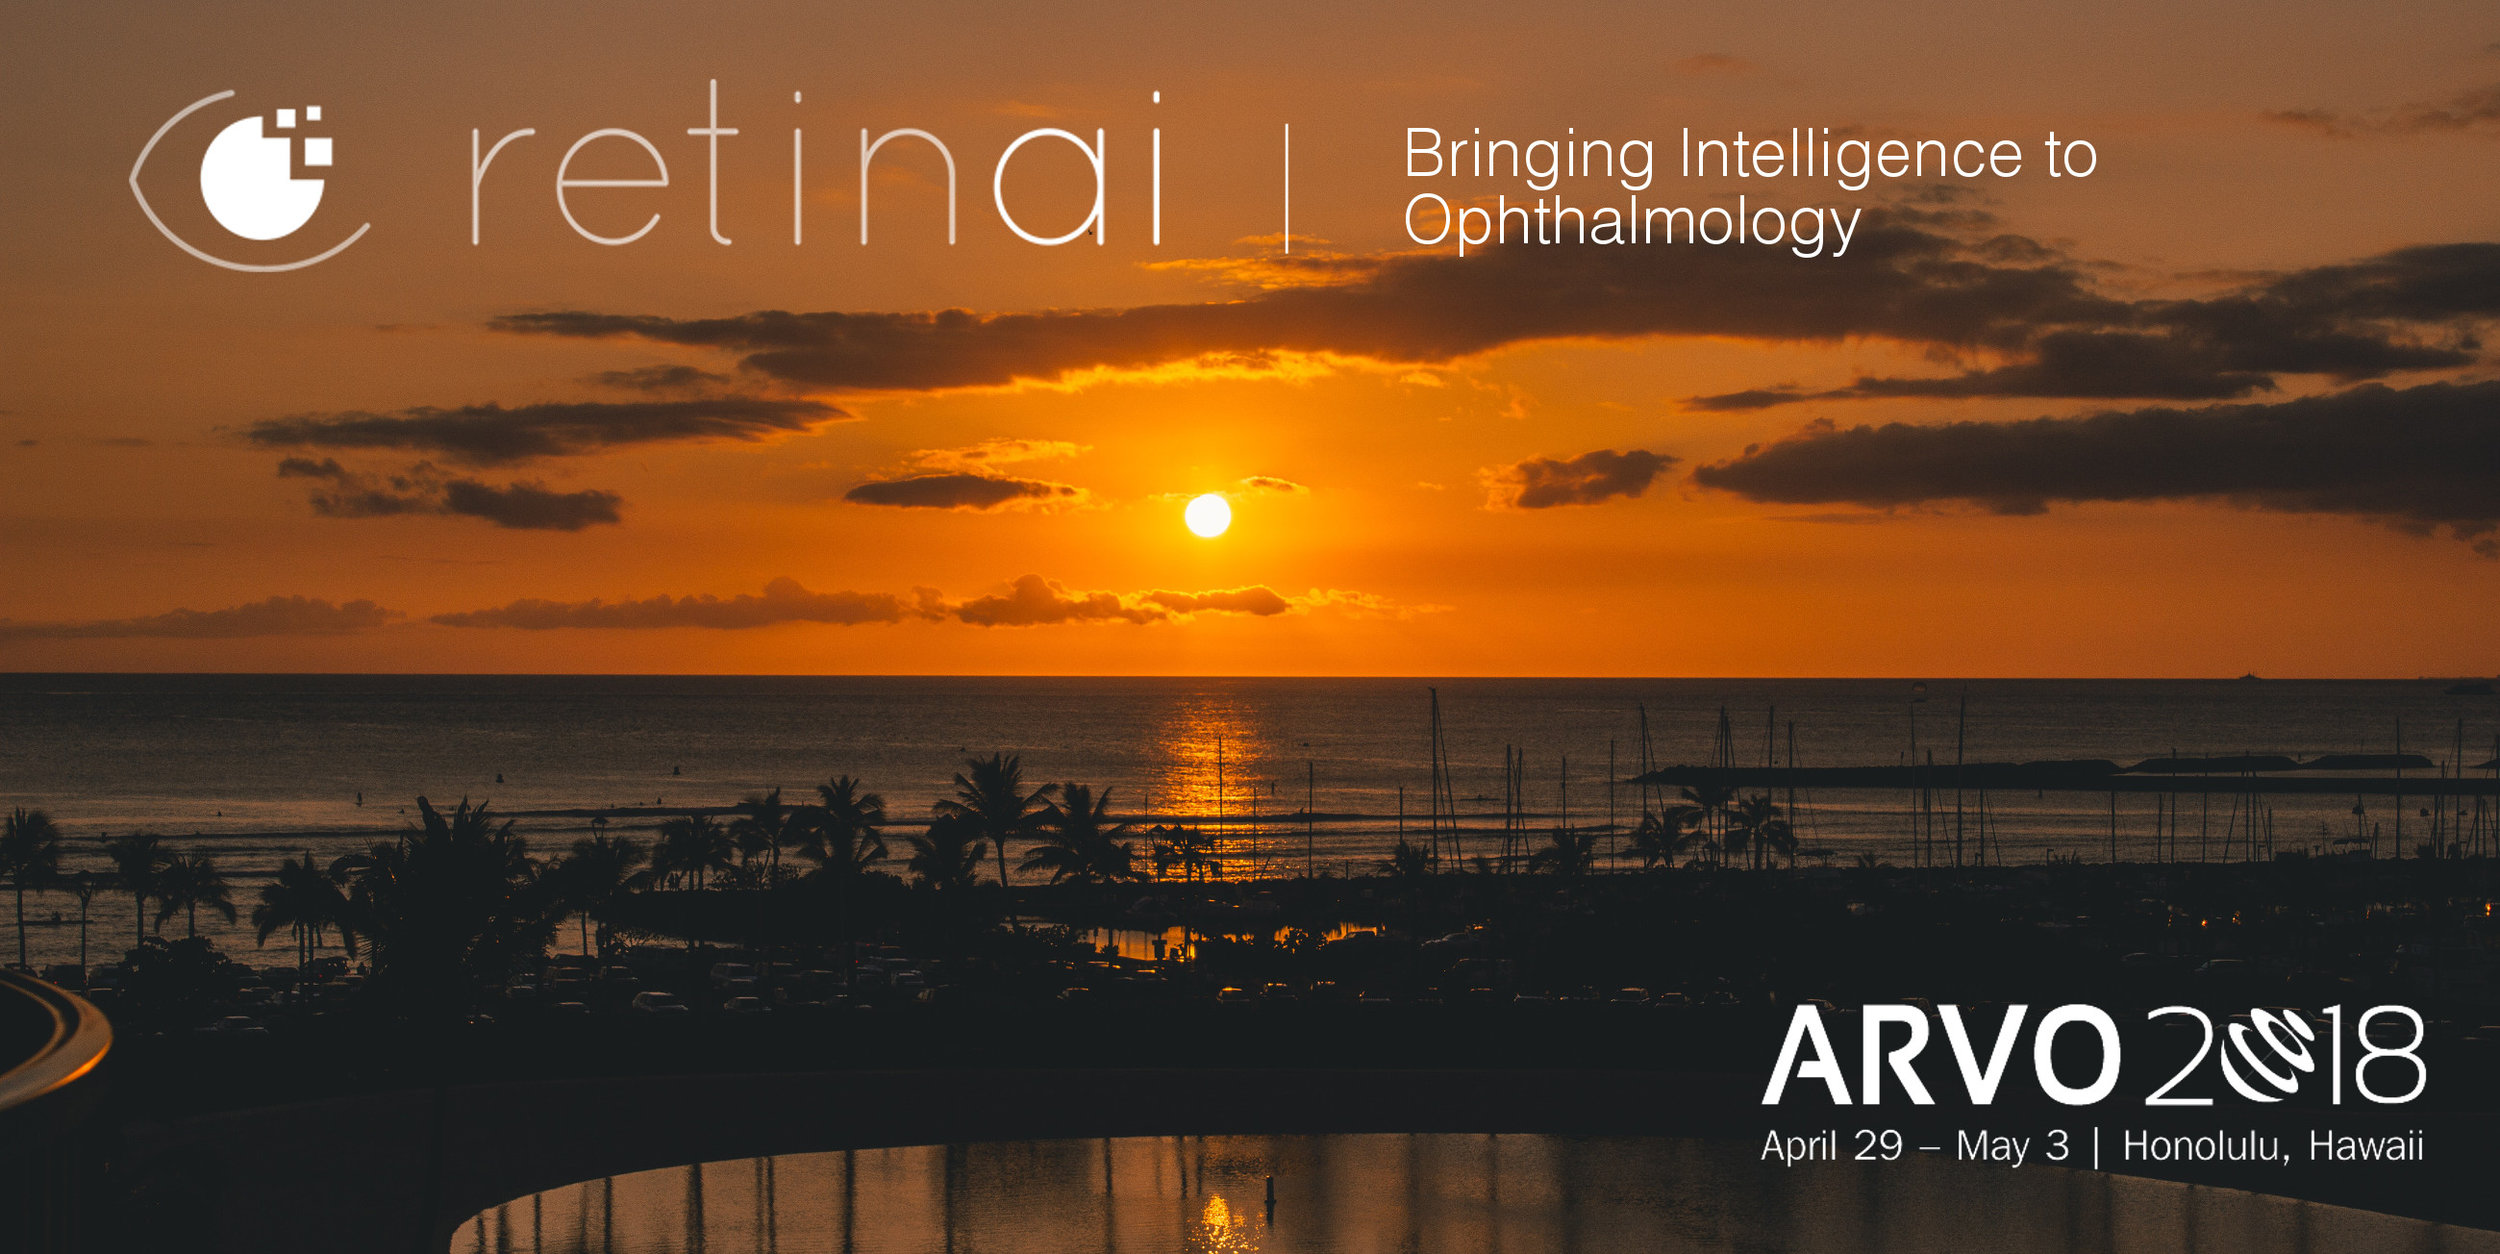 ARVO 2018Honolulu - hawaï[April-may'18] - RetinAI is getting ready for the American Research in Vision and Ophthalmology #ARVO2018 in Hawaii! Come to our booth 1039 if you want to learn about how #AI is changing the world of ophthalmic care!